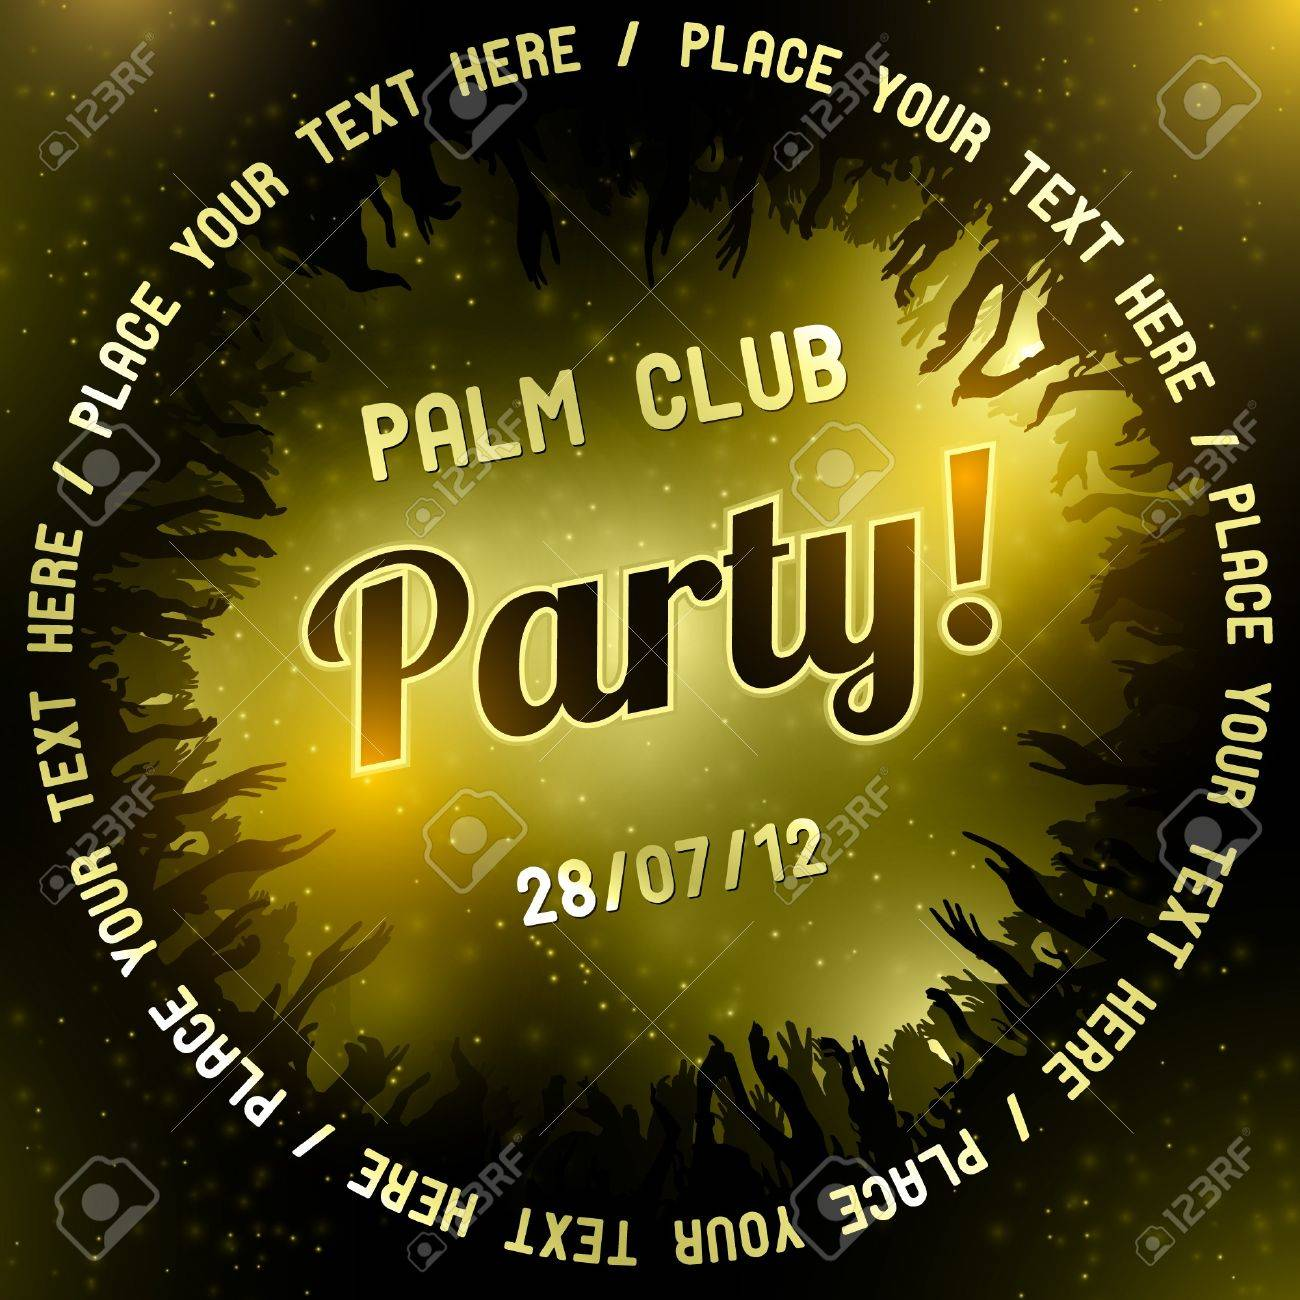 Gold Party flyer vector template - 14580906